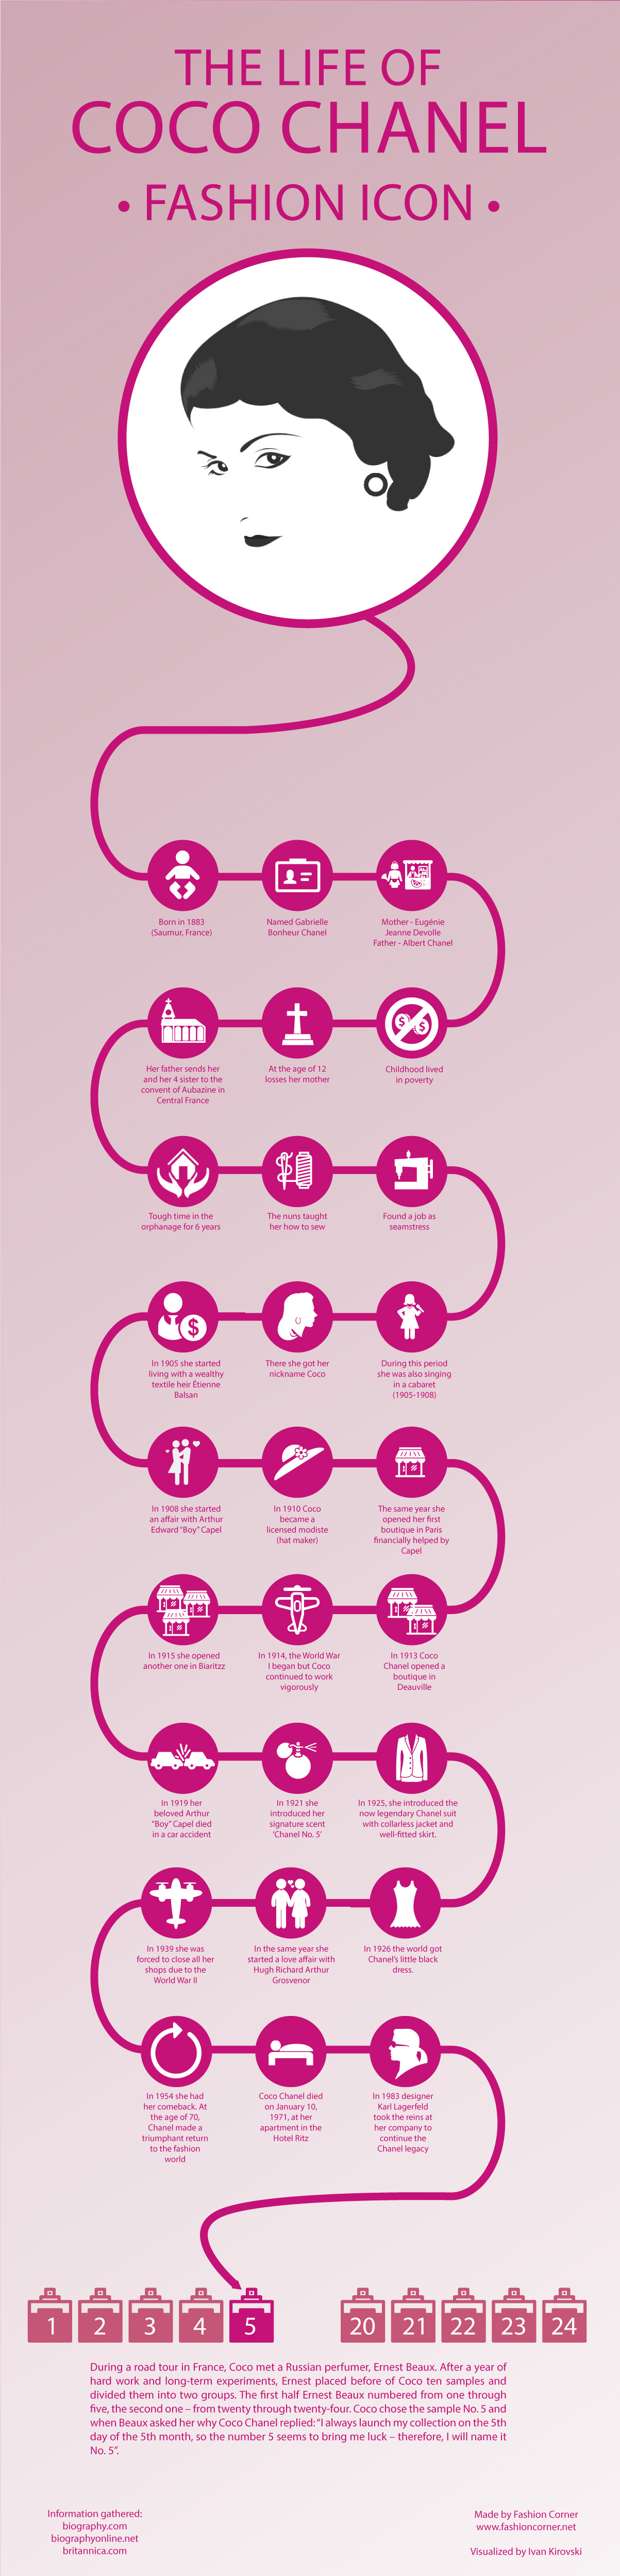 coco-chanel-infographic